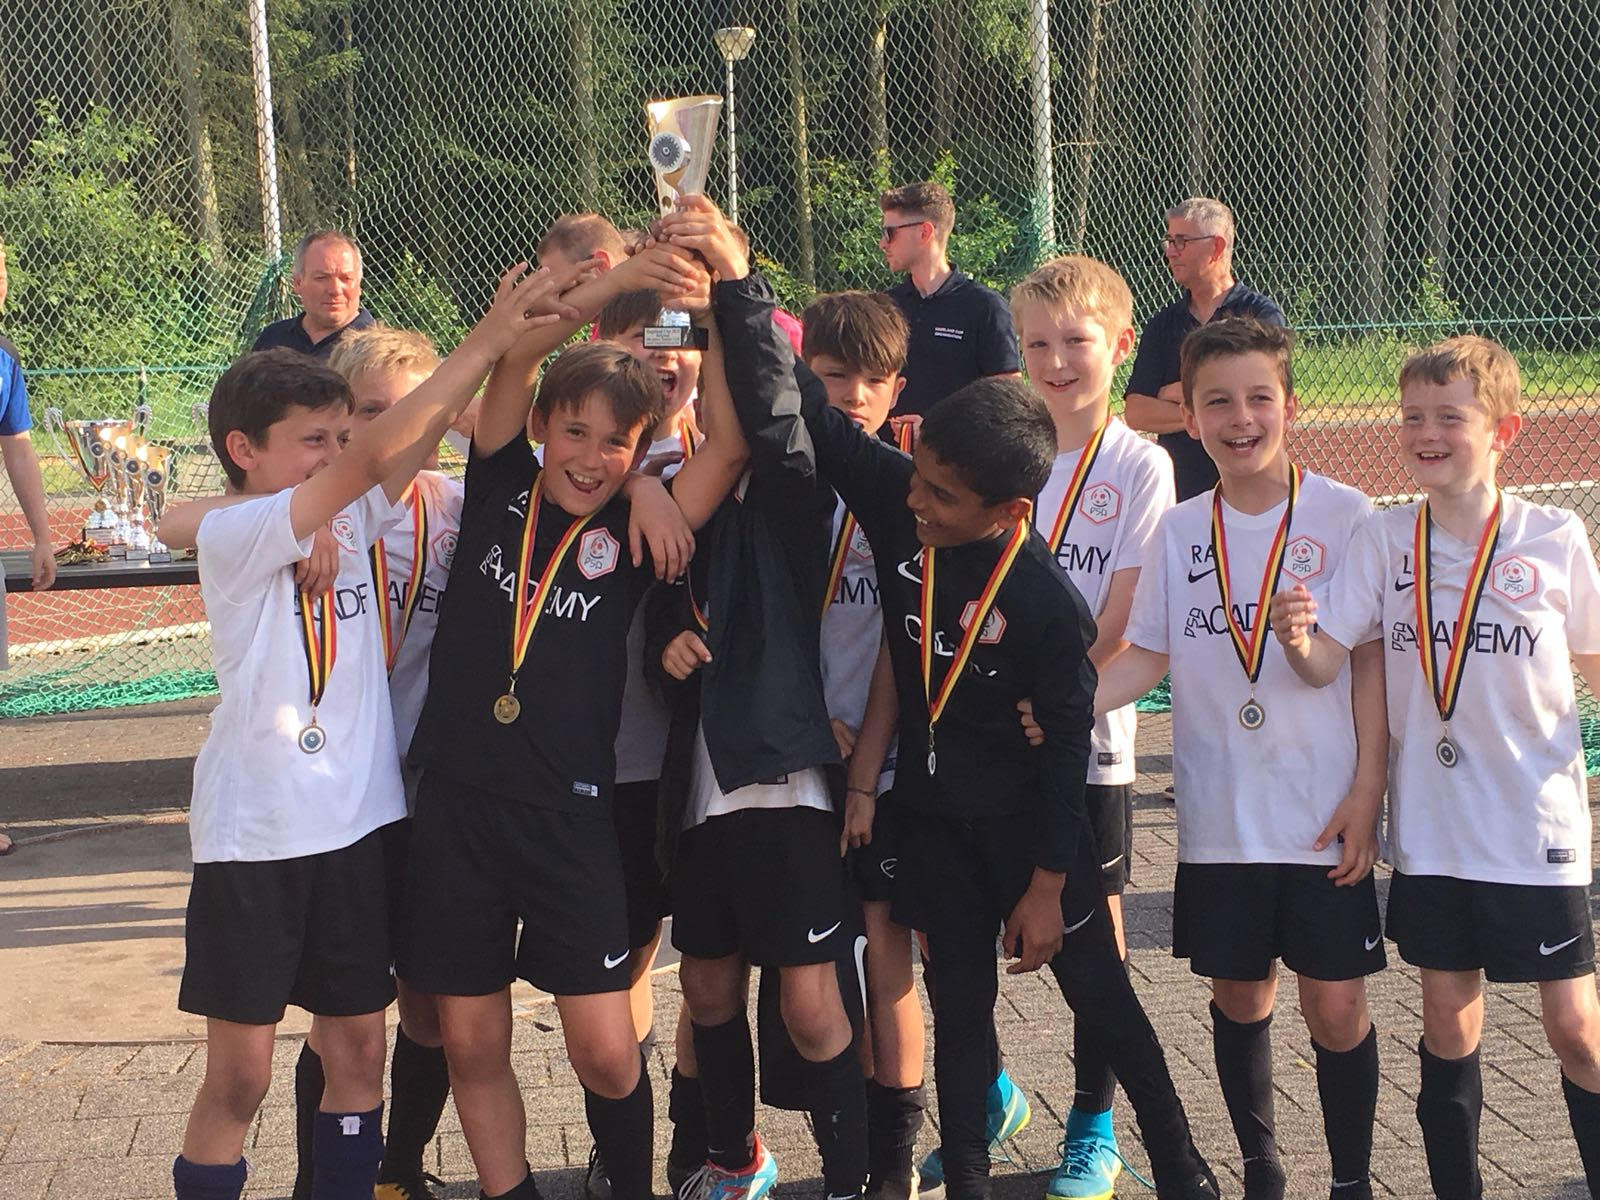 BELGIUM, MAY 2018 - WE TOOK THE U10s AND U12s AWAY AND THE BOYS HAD A FANTASTIC TOURNAMENT! AFTER THE FIRST DAY BOTH SETS OF BOYS REACHED THE FINAL 4 IN BOTH AGE CATEGORIES, AND THE U12s REACHED THE FINAL WHERE THEY LOST 2-1, AND THE U10s CAME 4TH. ANOTHER GREAT ACHIEVEMENT ABROAD!